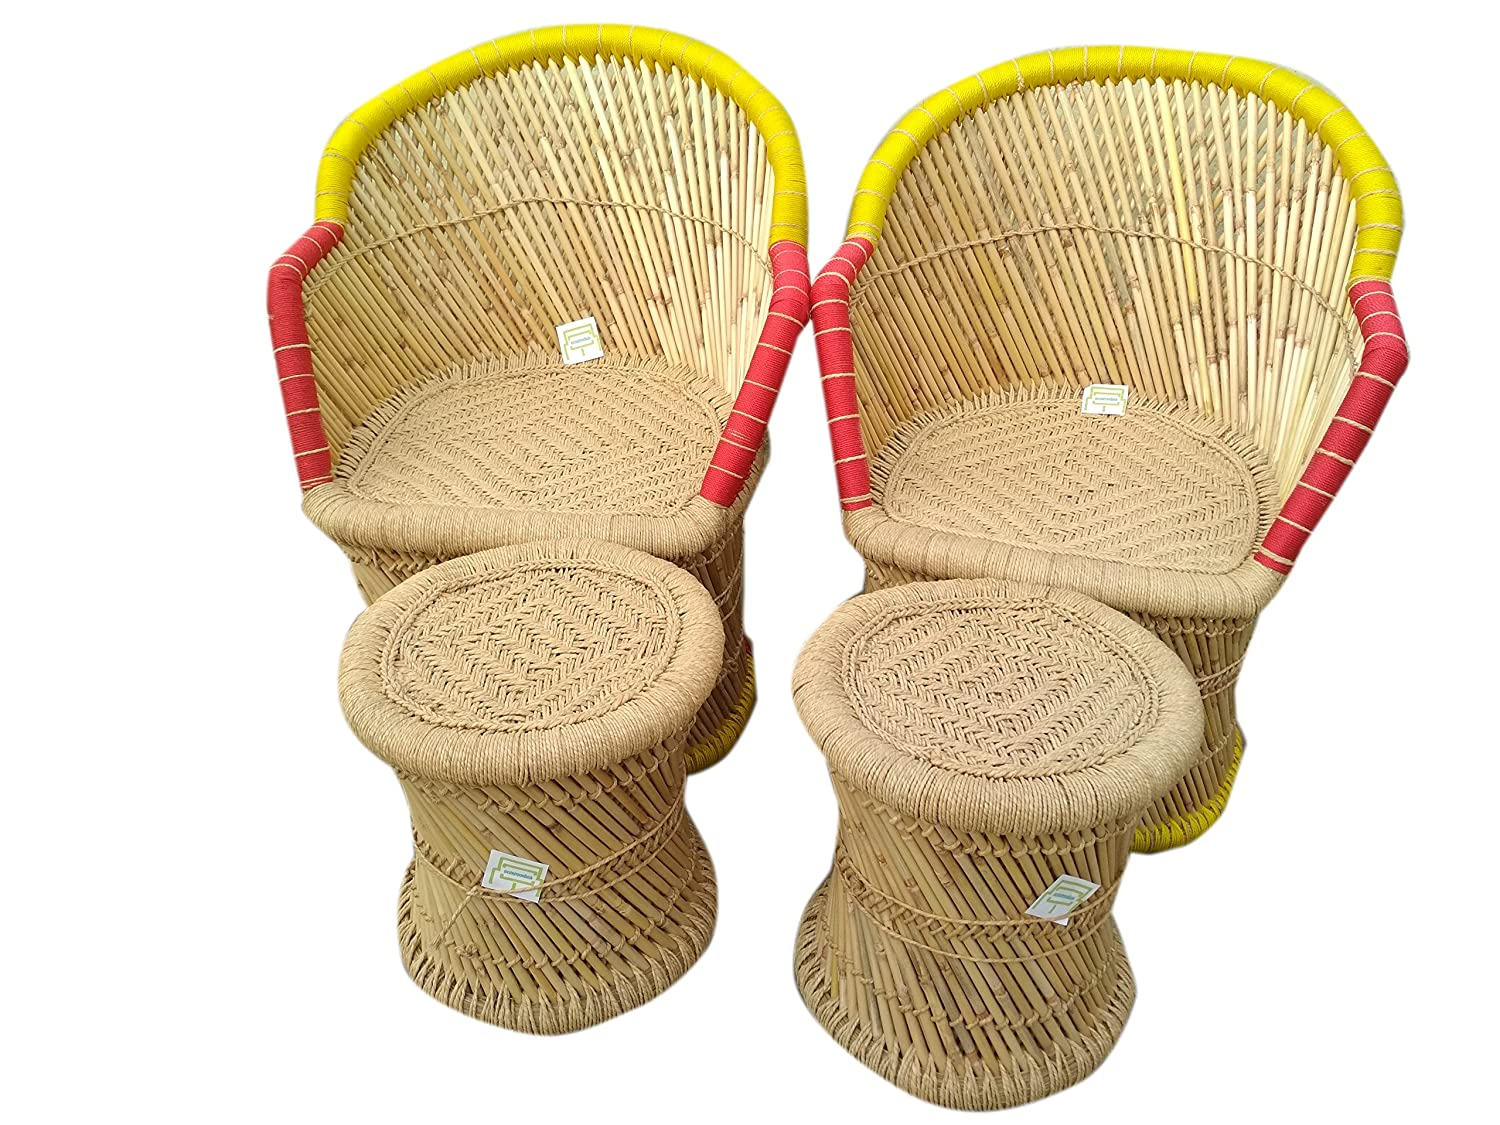 Ecowoodies eco friendly outdoor bamboo chair stool furniture set for home and living room amazon in home kitchen